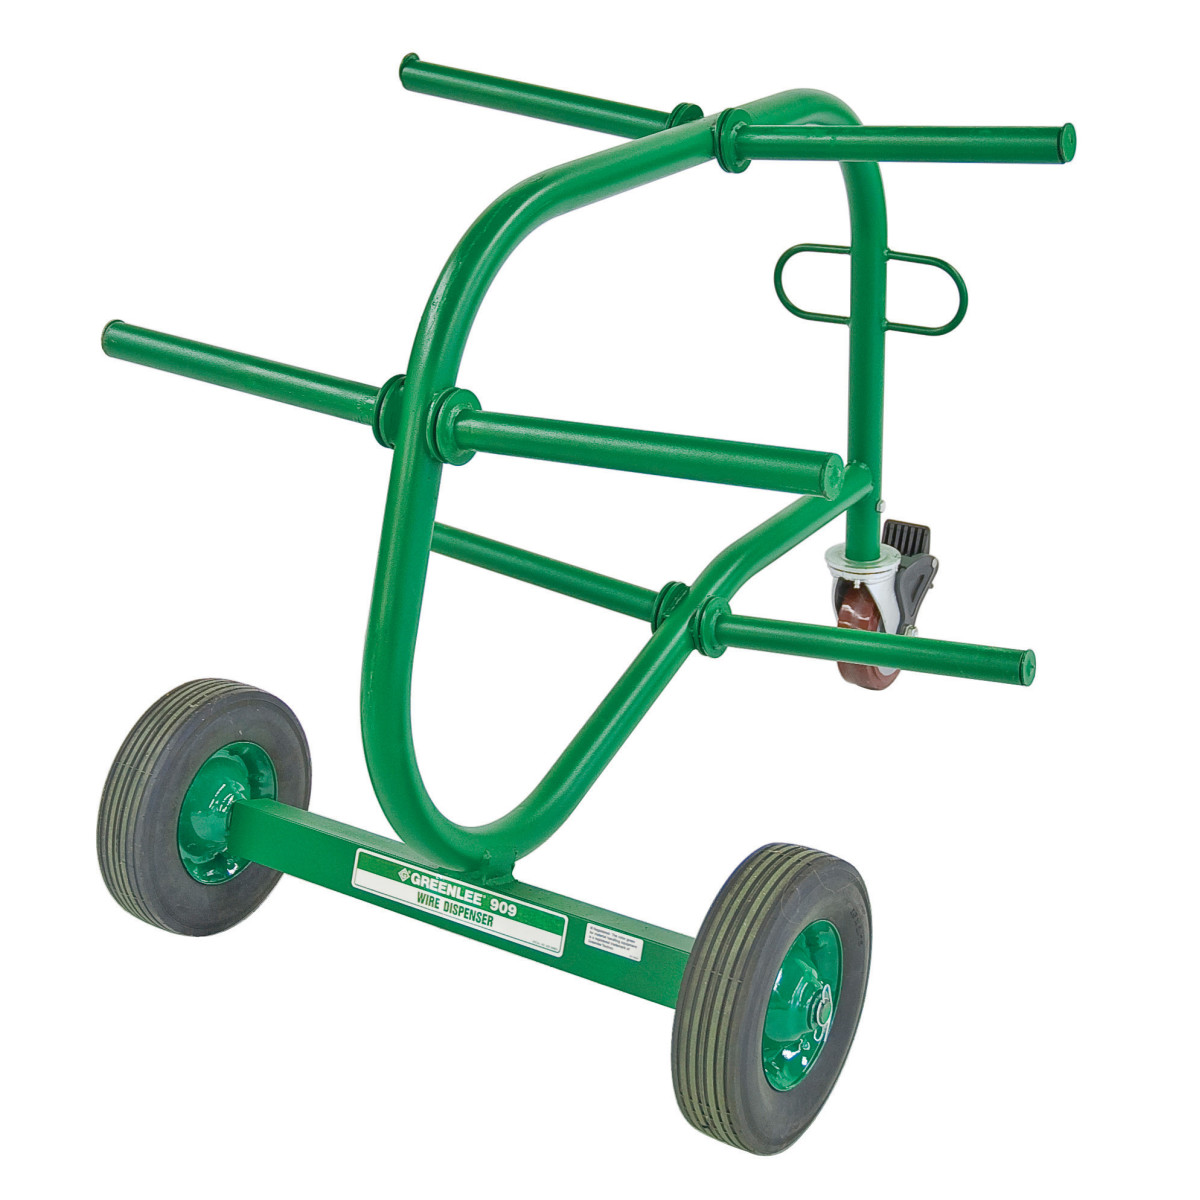 Greenlee 909 Wire Dispenser Cart w/ Six Reel Spindles and Feeding Eye